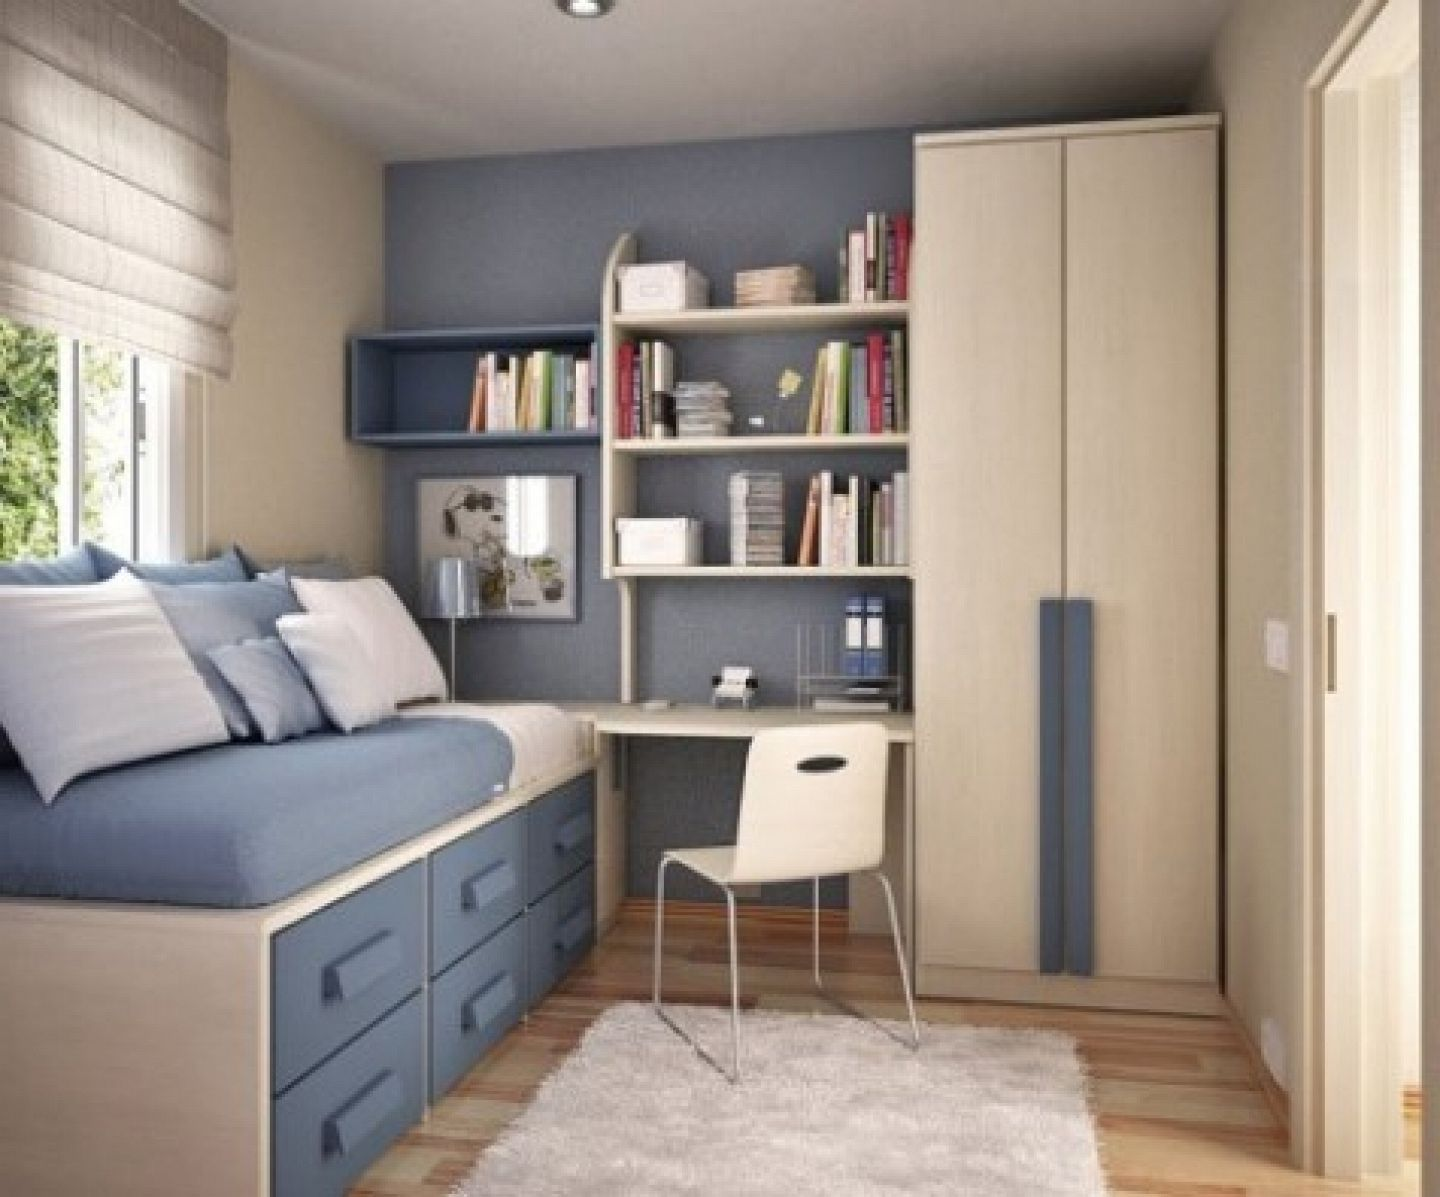 How To Decorate A Small Bedroom For A Teenager Get 20 43 Bedroom Furniture For Sale Ideas On Pinterest